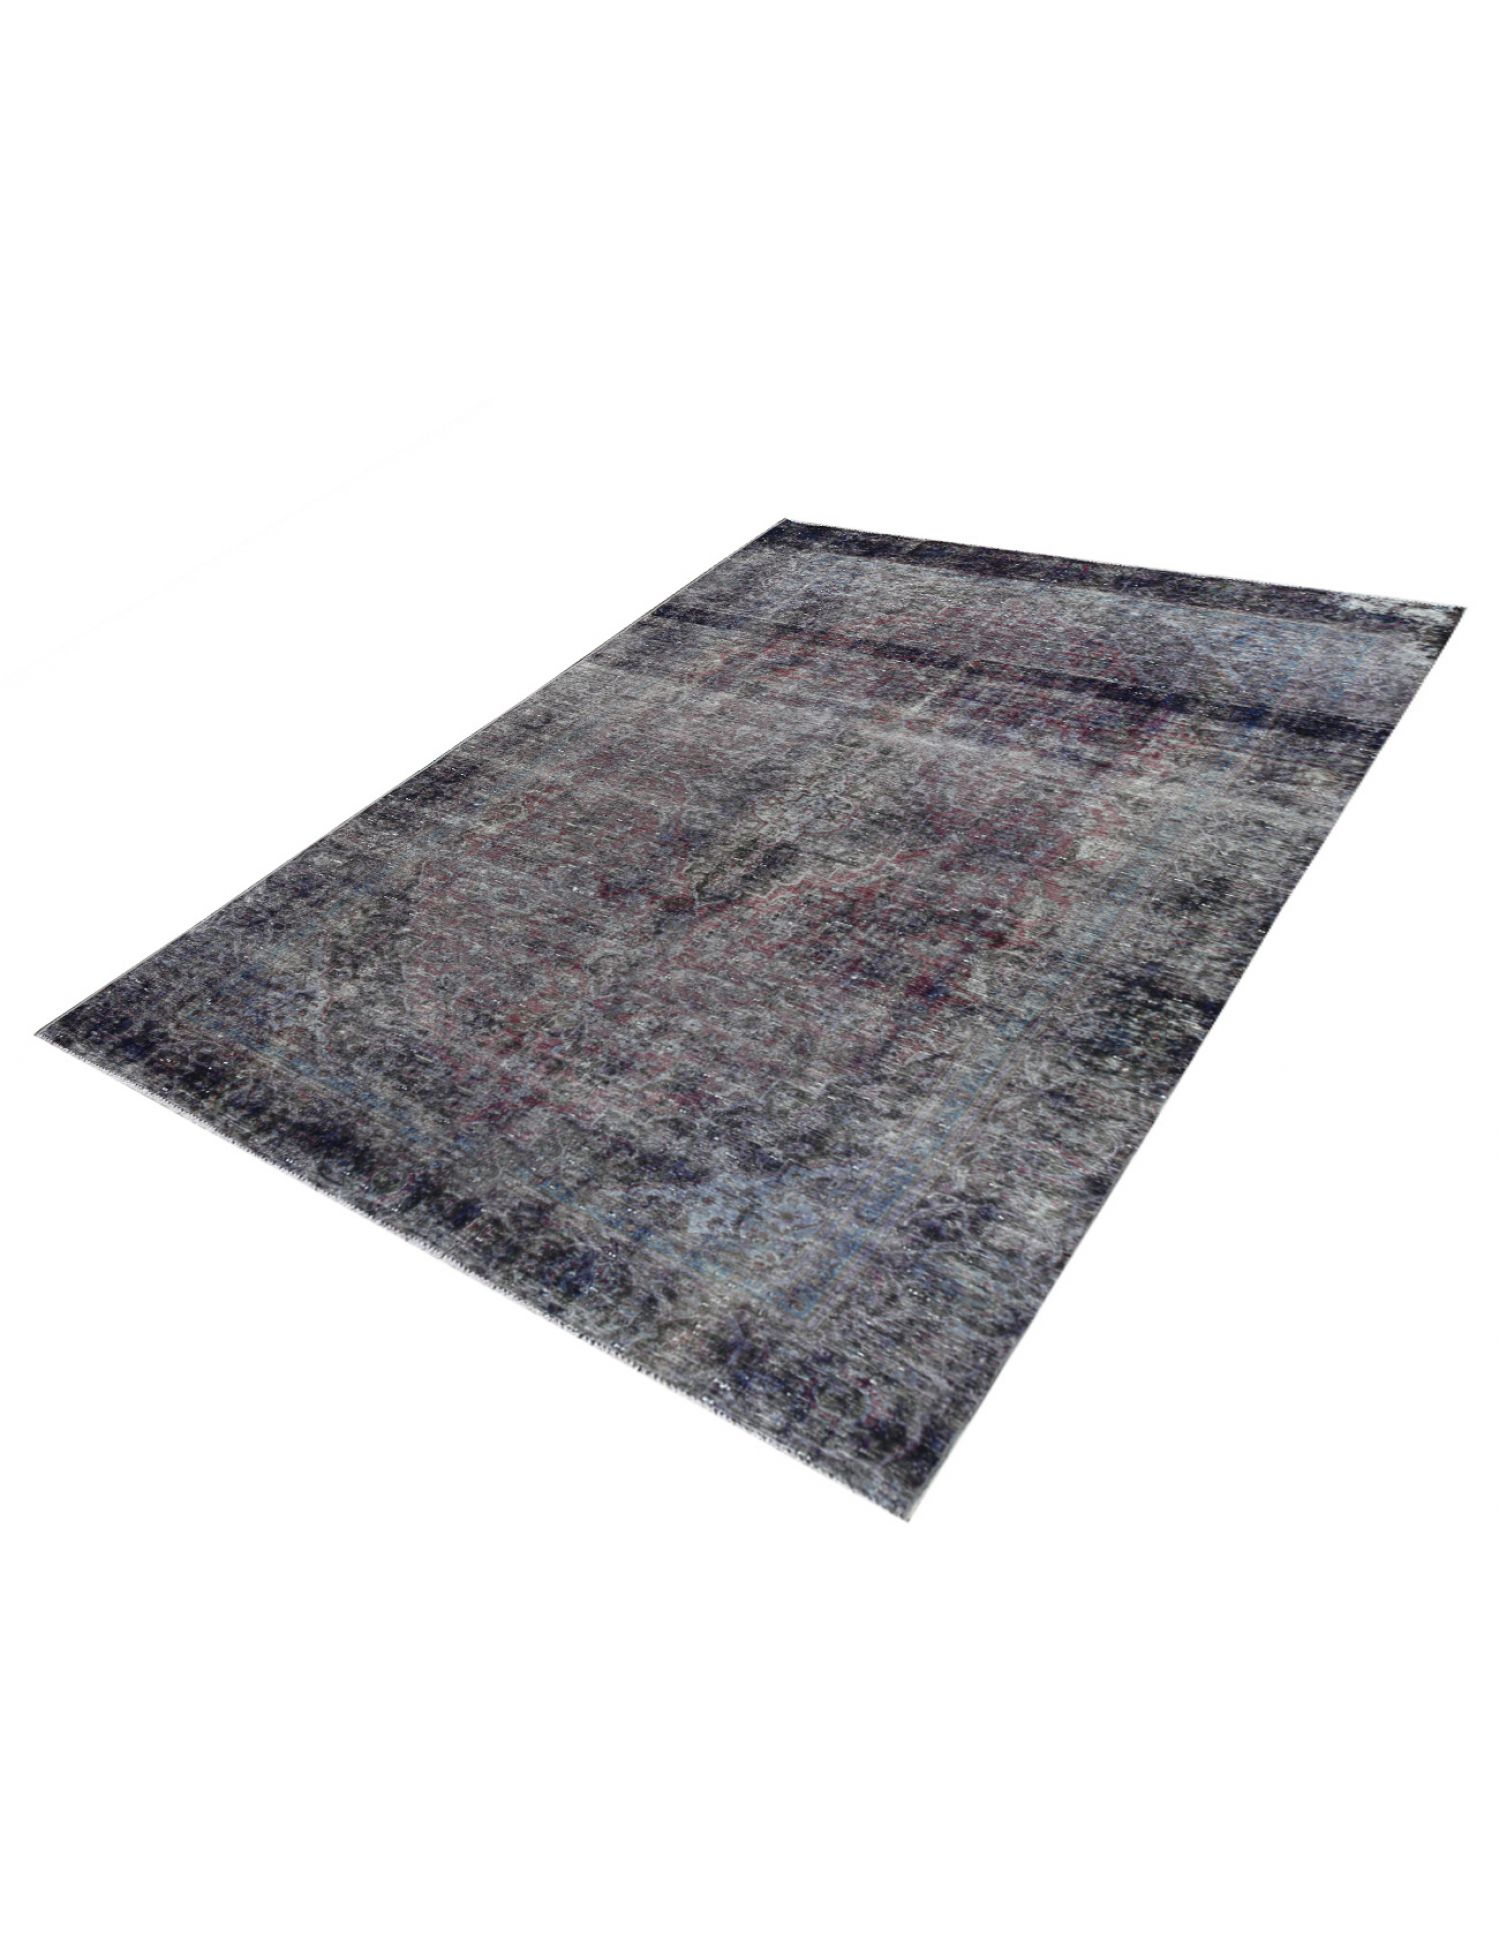 Vintage Carpet  black <br/>346 x 280 cm